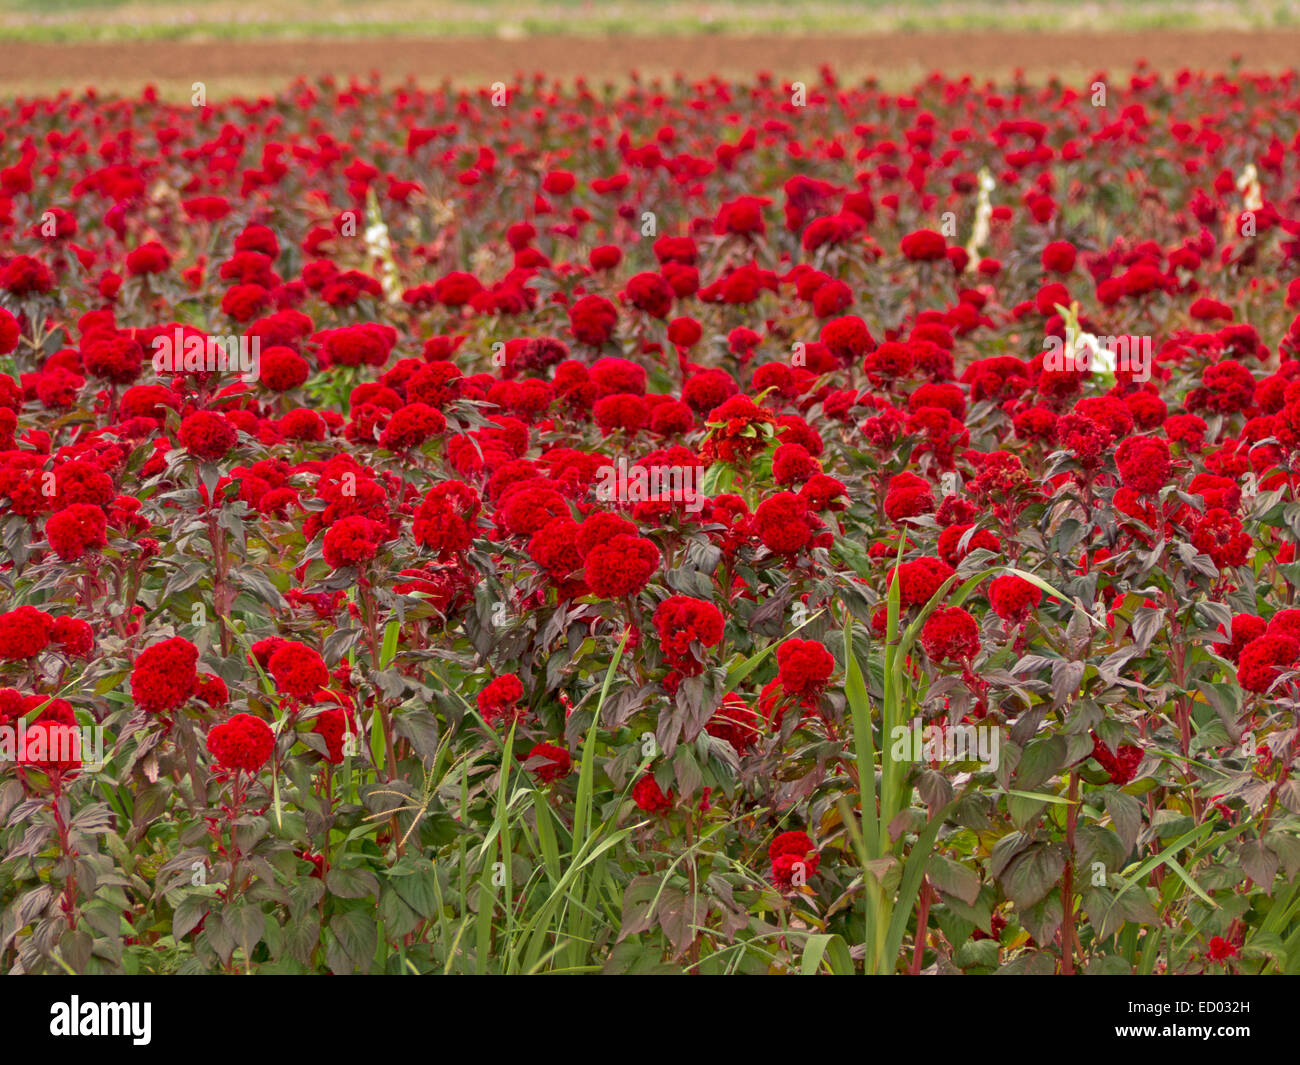 bright red flowers field - photo #11